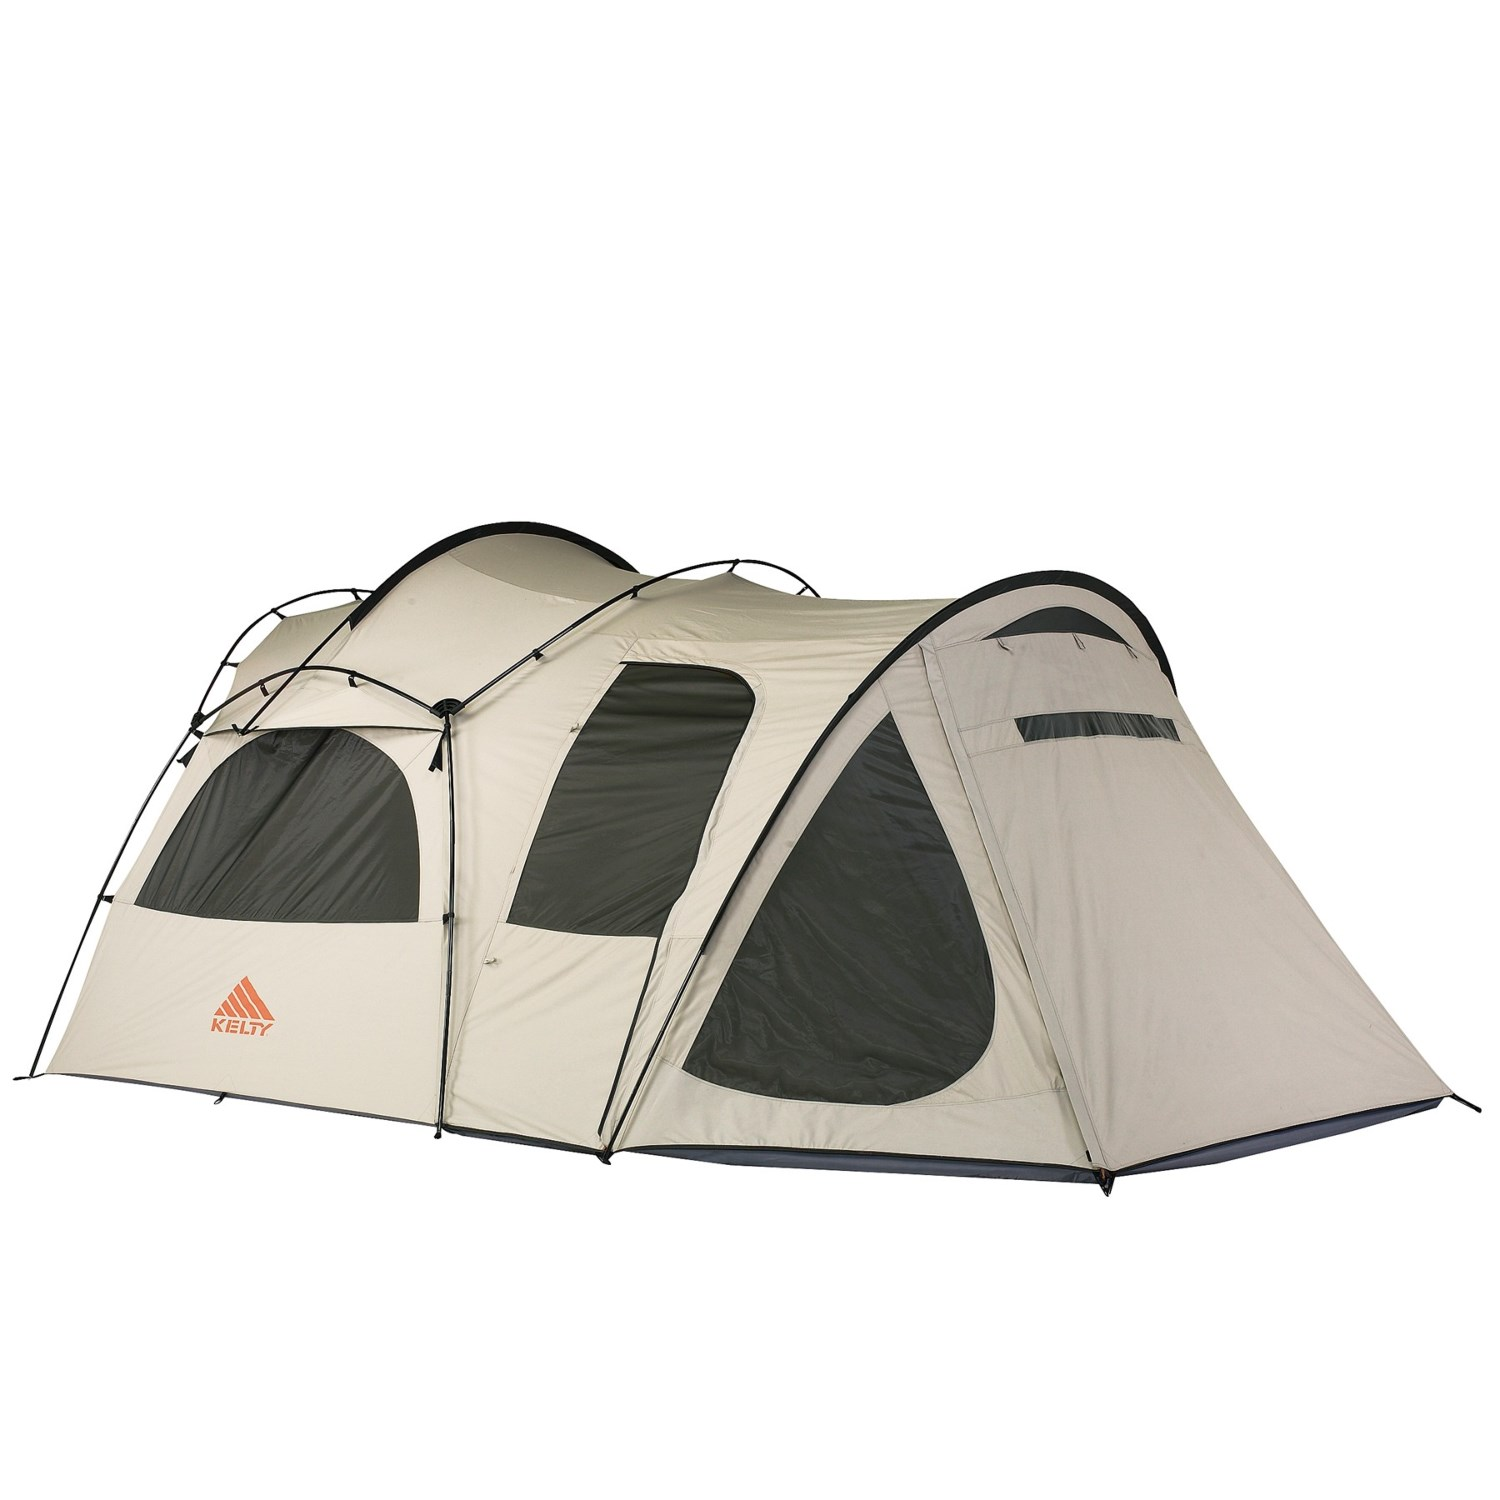 4 Person Tent : Kelty frontier tent person season p save